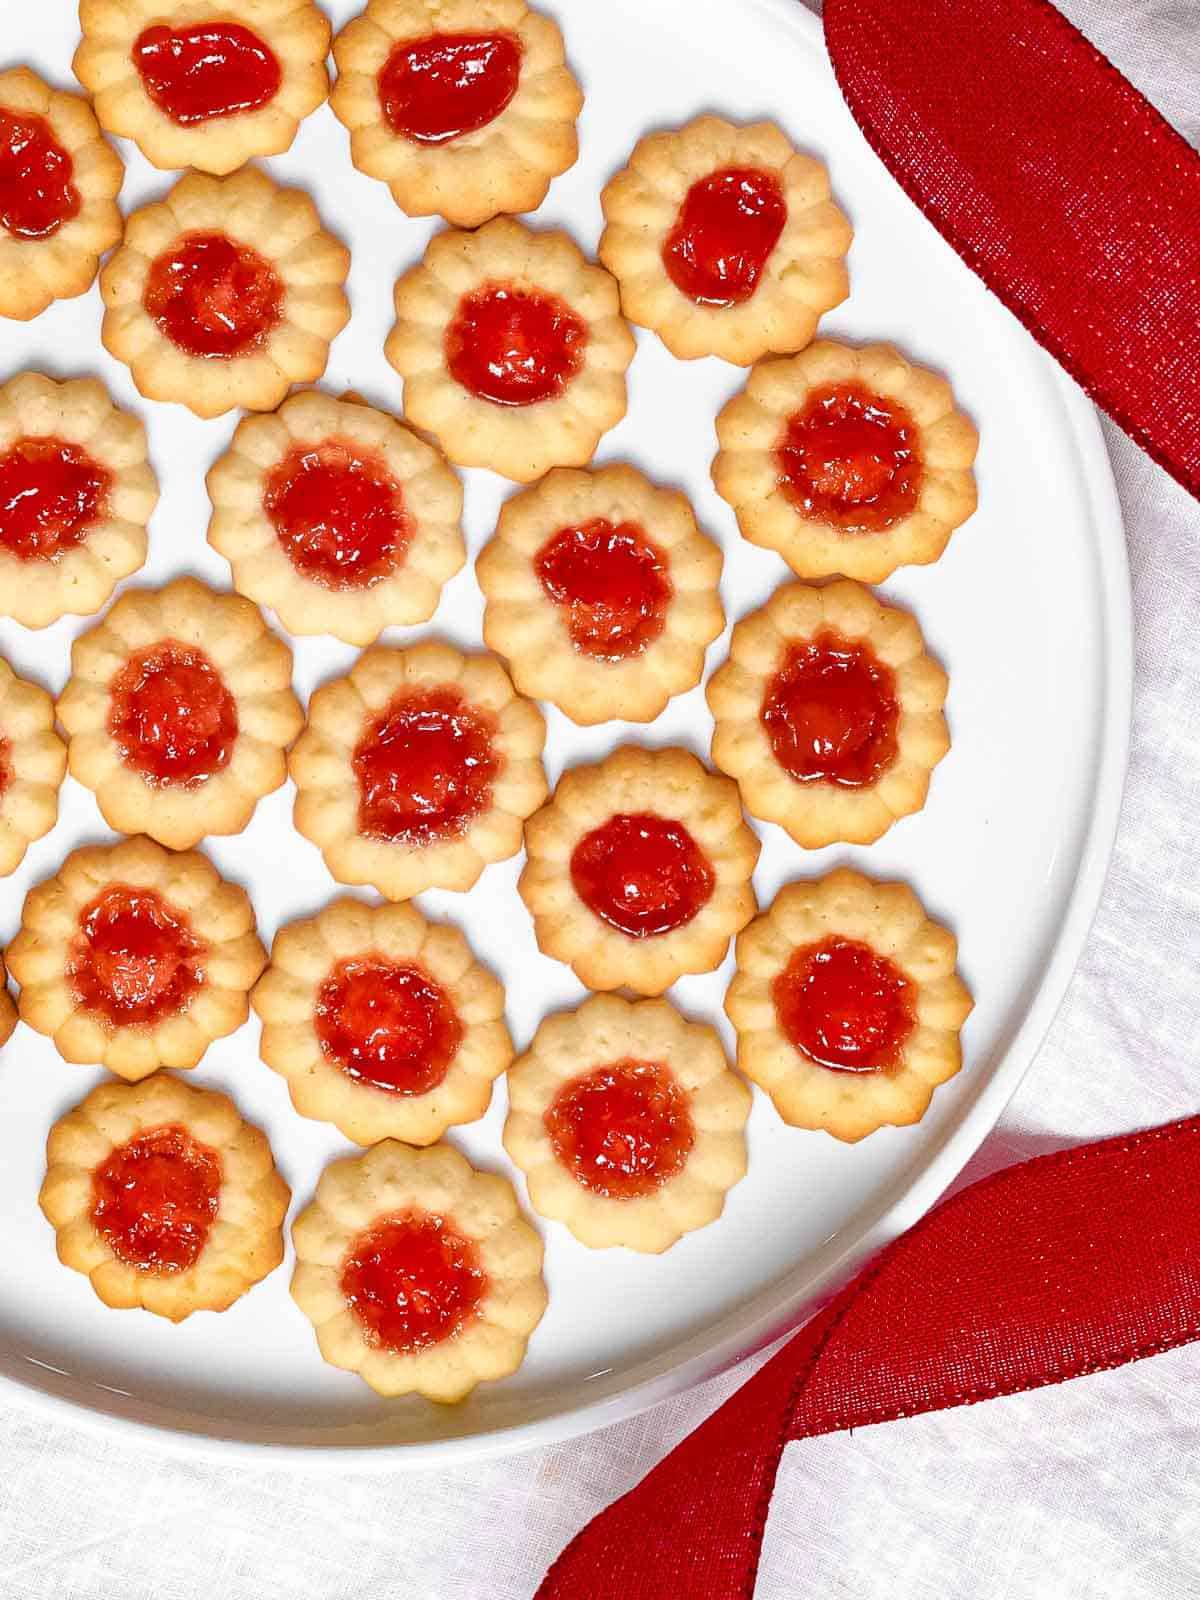 An overhead photo of jam thumbprint cookies filled with red jam in a white plate next to a red ribbon.